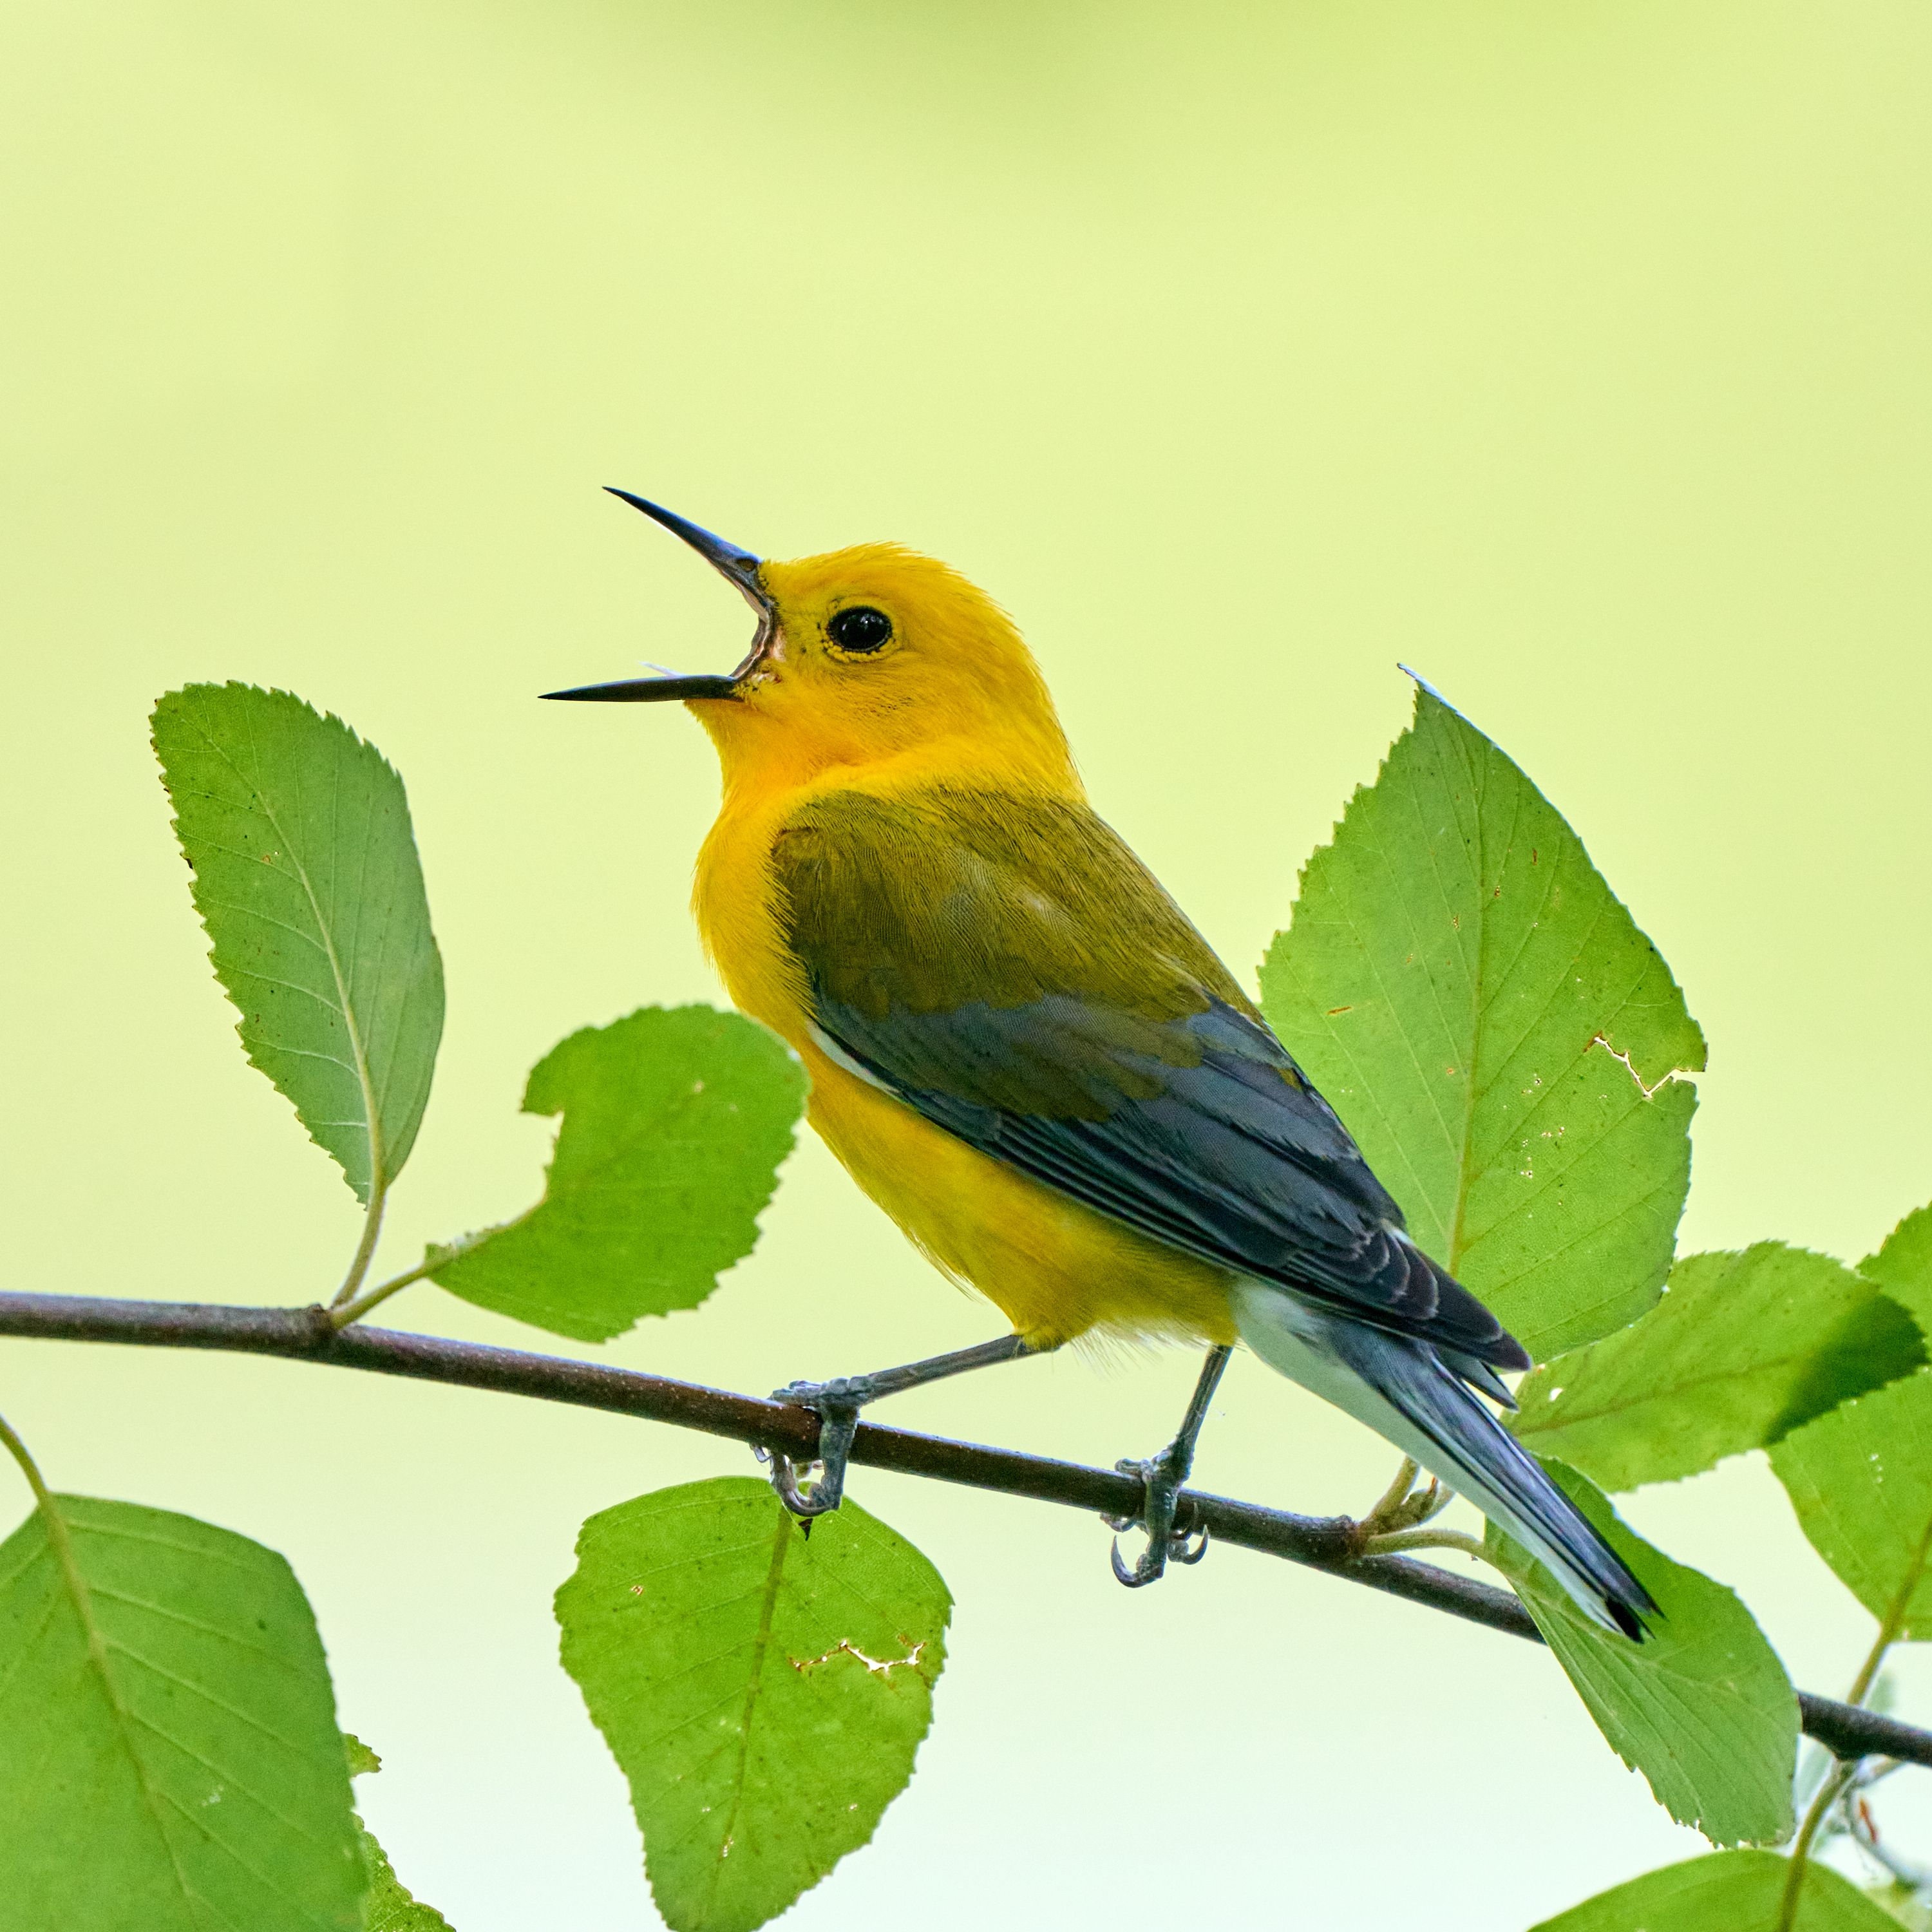 A Prothonotary Warbler giving some feedback on the company's performance review process.